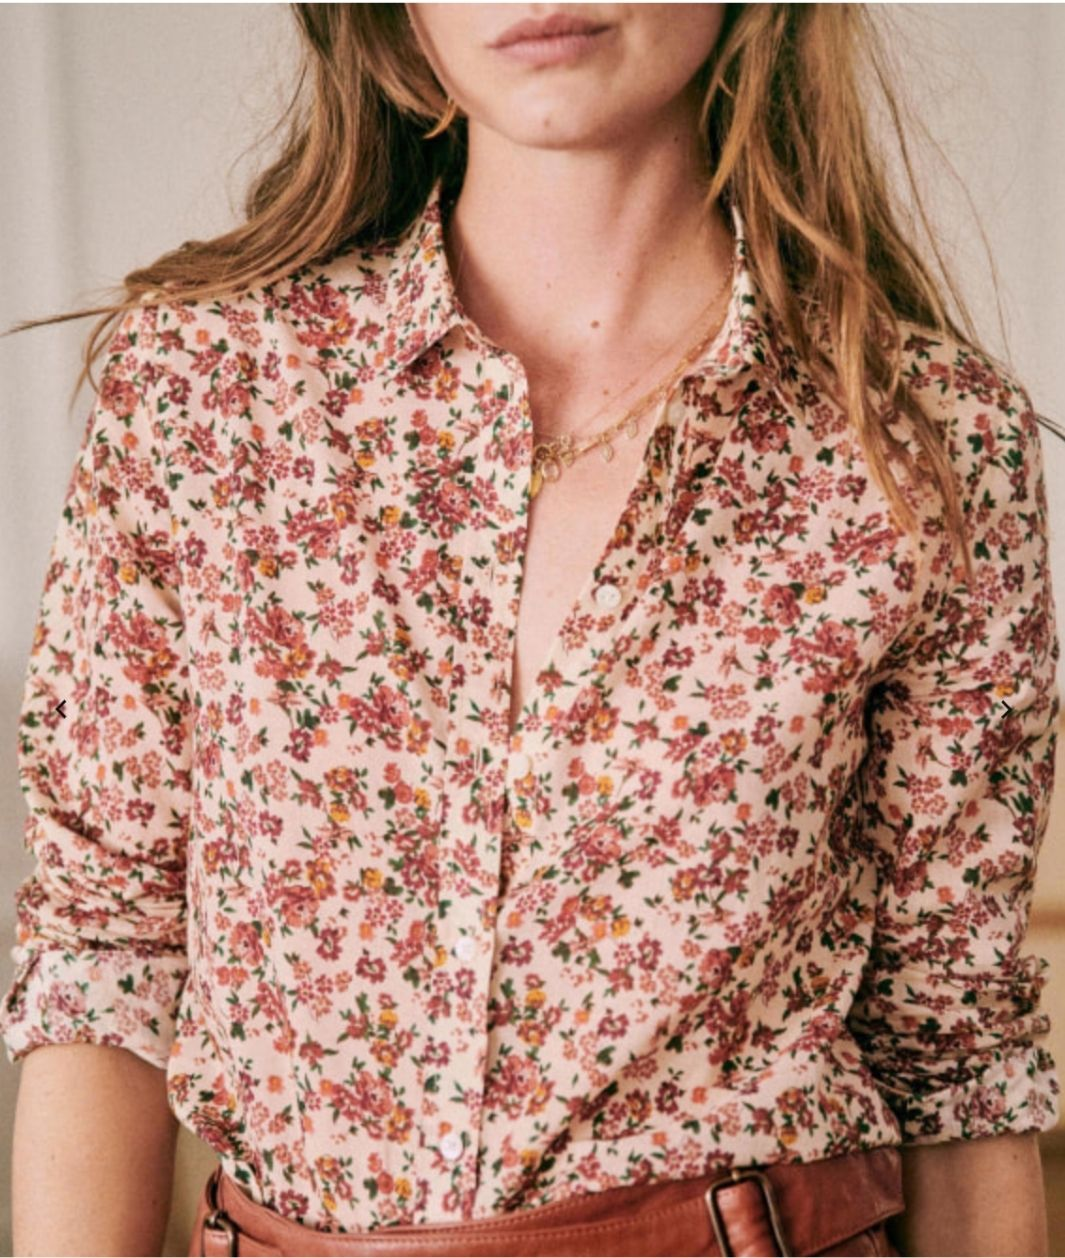 French Clothing Brand Parisian Style Floral Top Paris Chic Style Sezane